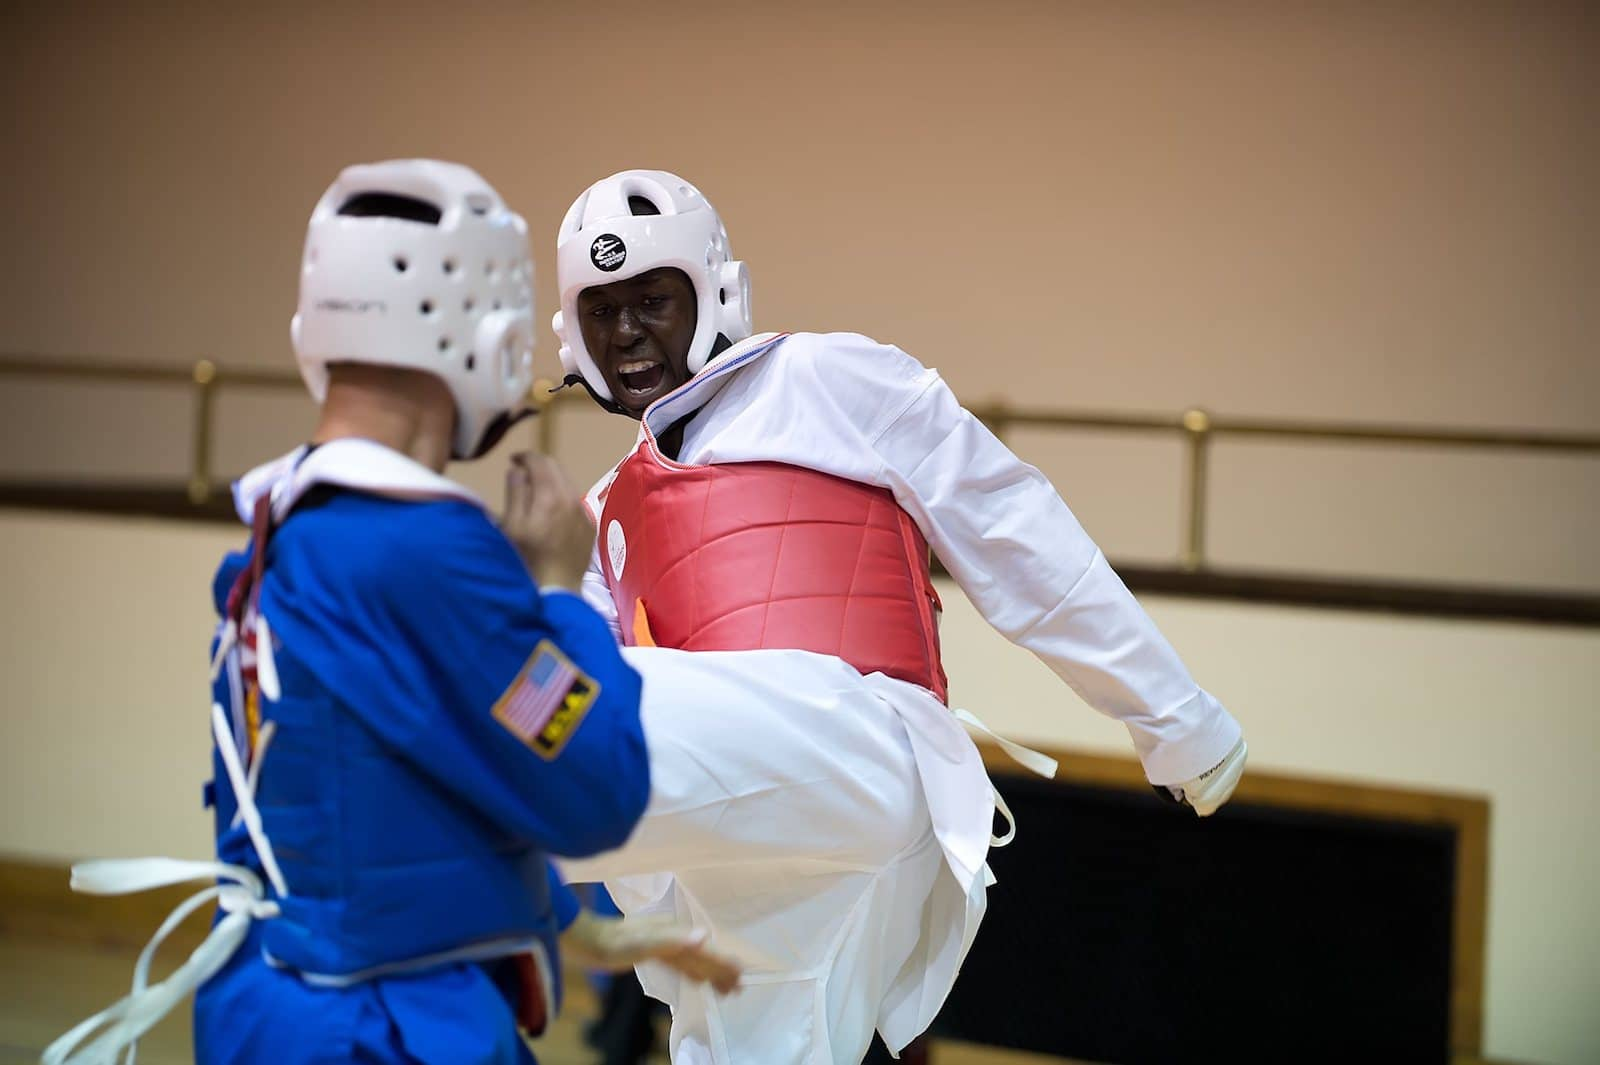 Image of a Tae Kwon Do competition at the Rocky Mountain State Games in Colorado Springs, CO